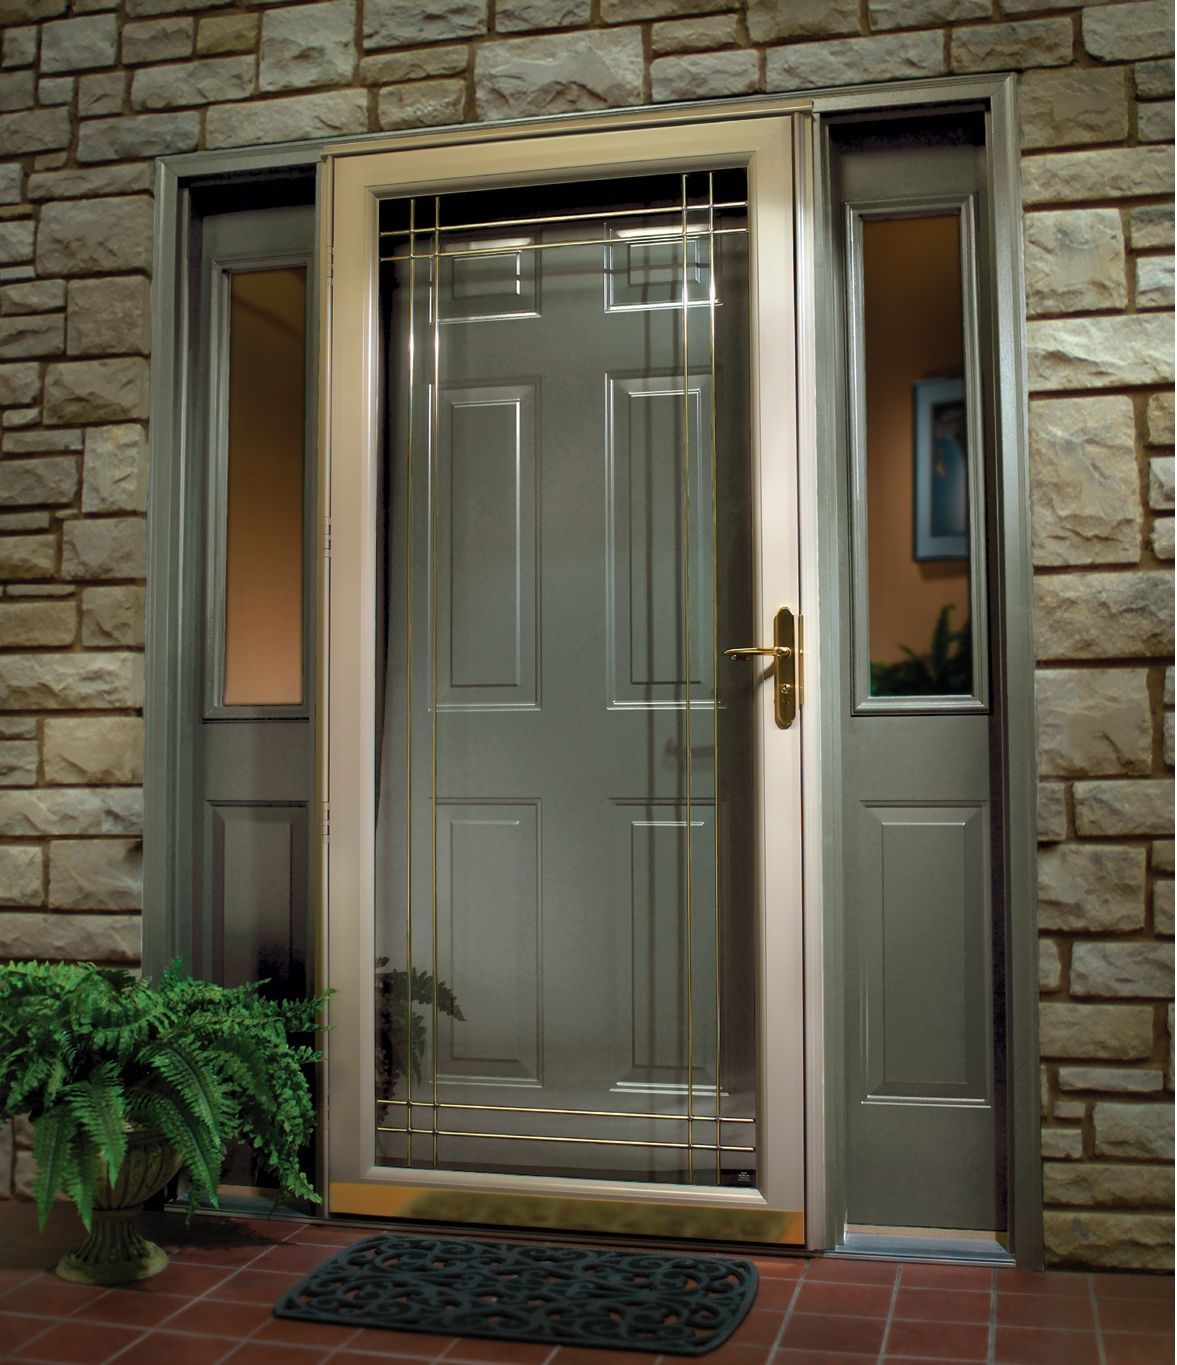 window design exterior doors for homes - Doors Design For Home